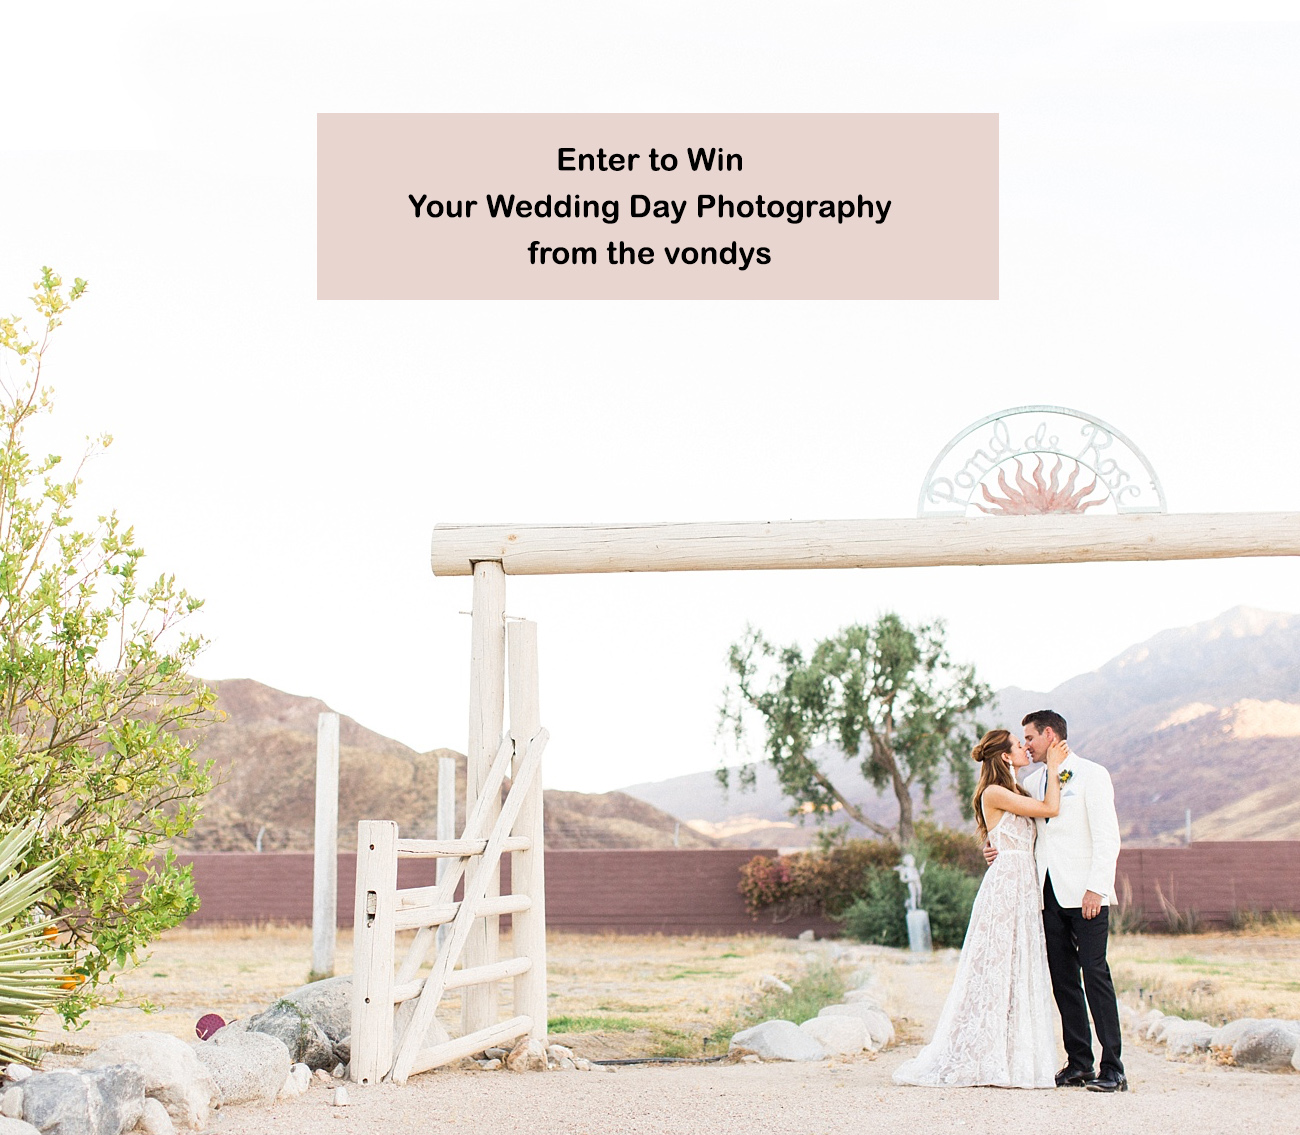 vondys wedding day photography giveaway